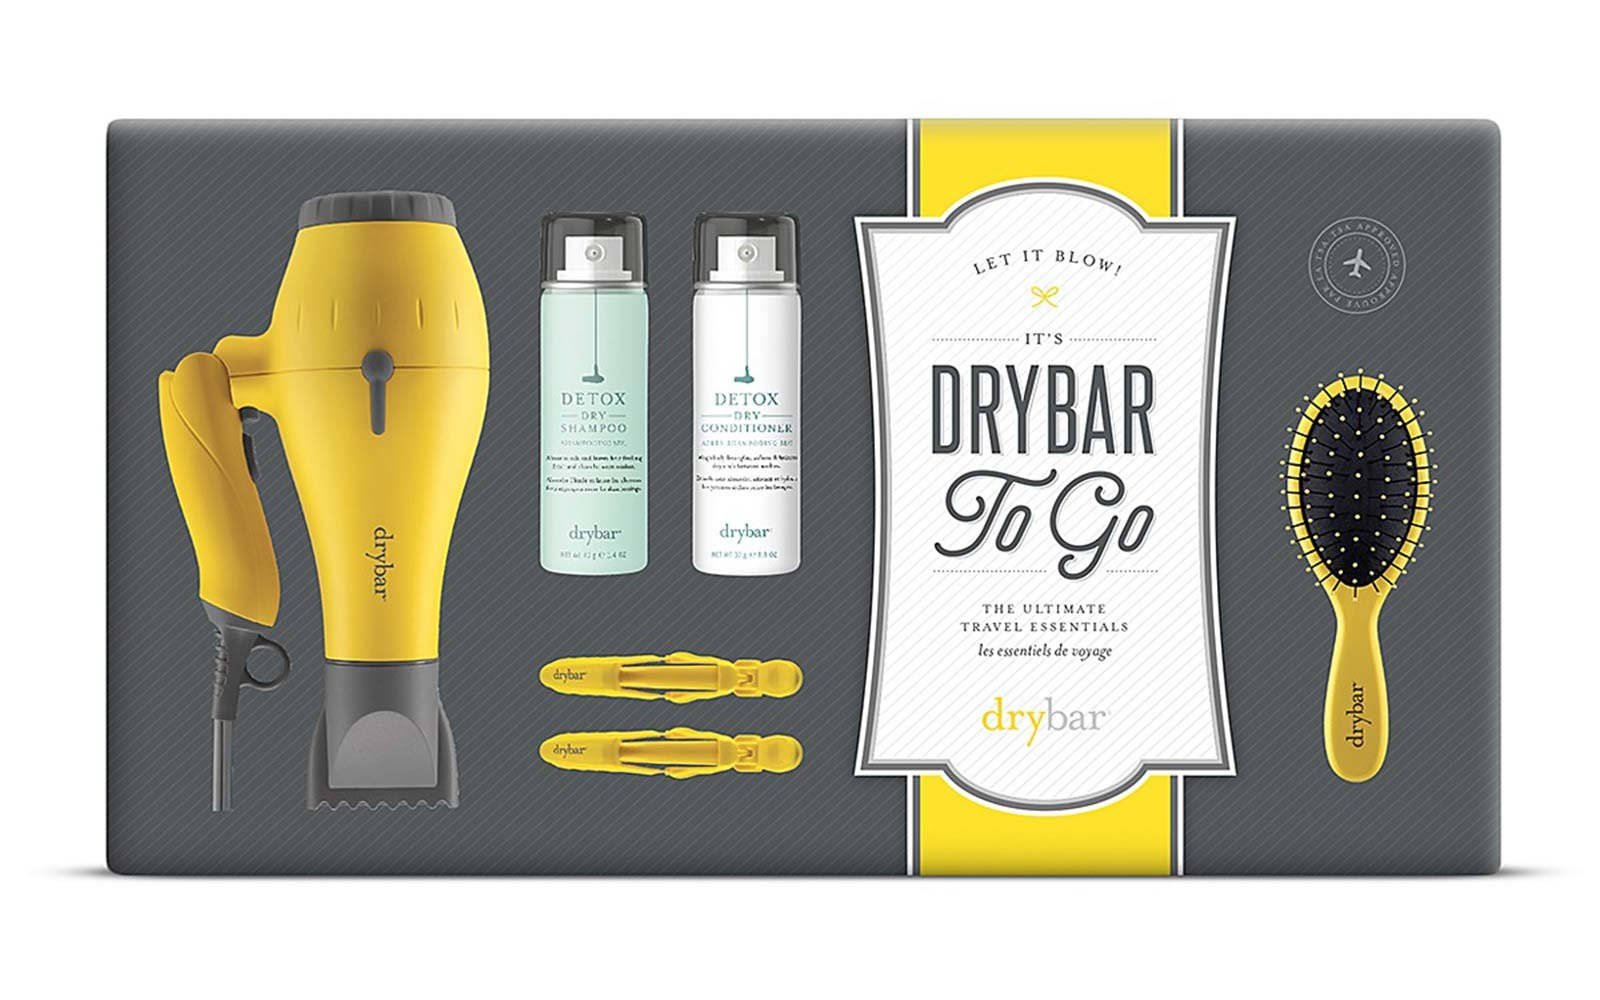 drybar to go ultimate travel essentials kit